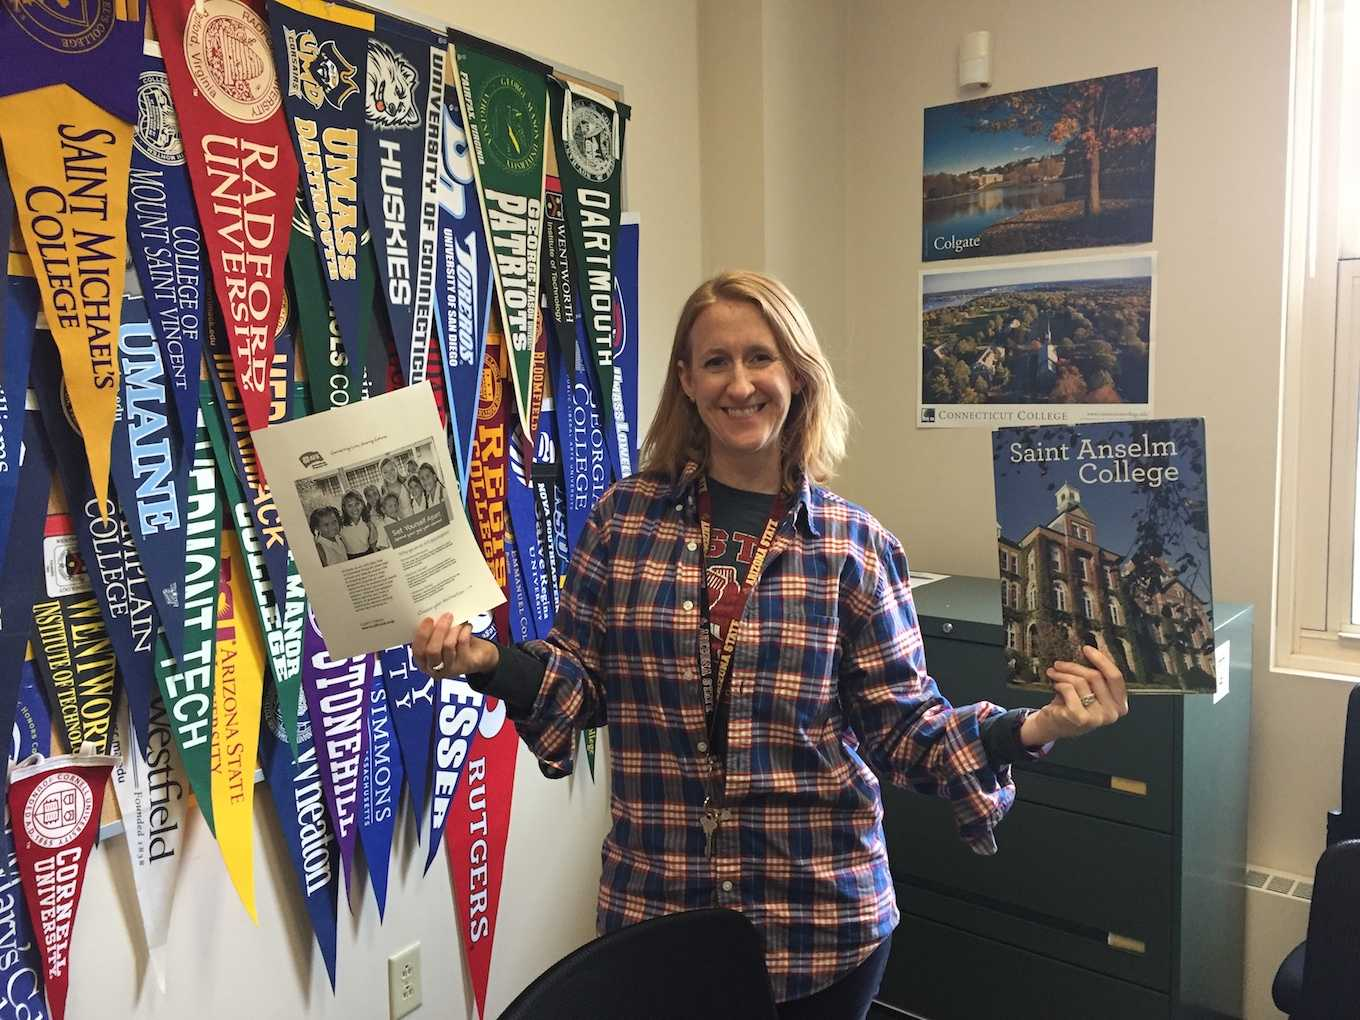 Here, IHS guidance counselor Mrs. May compares gap year programs with college options.